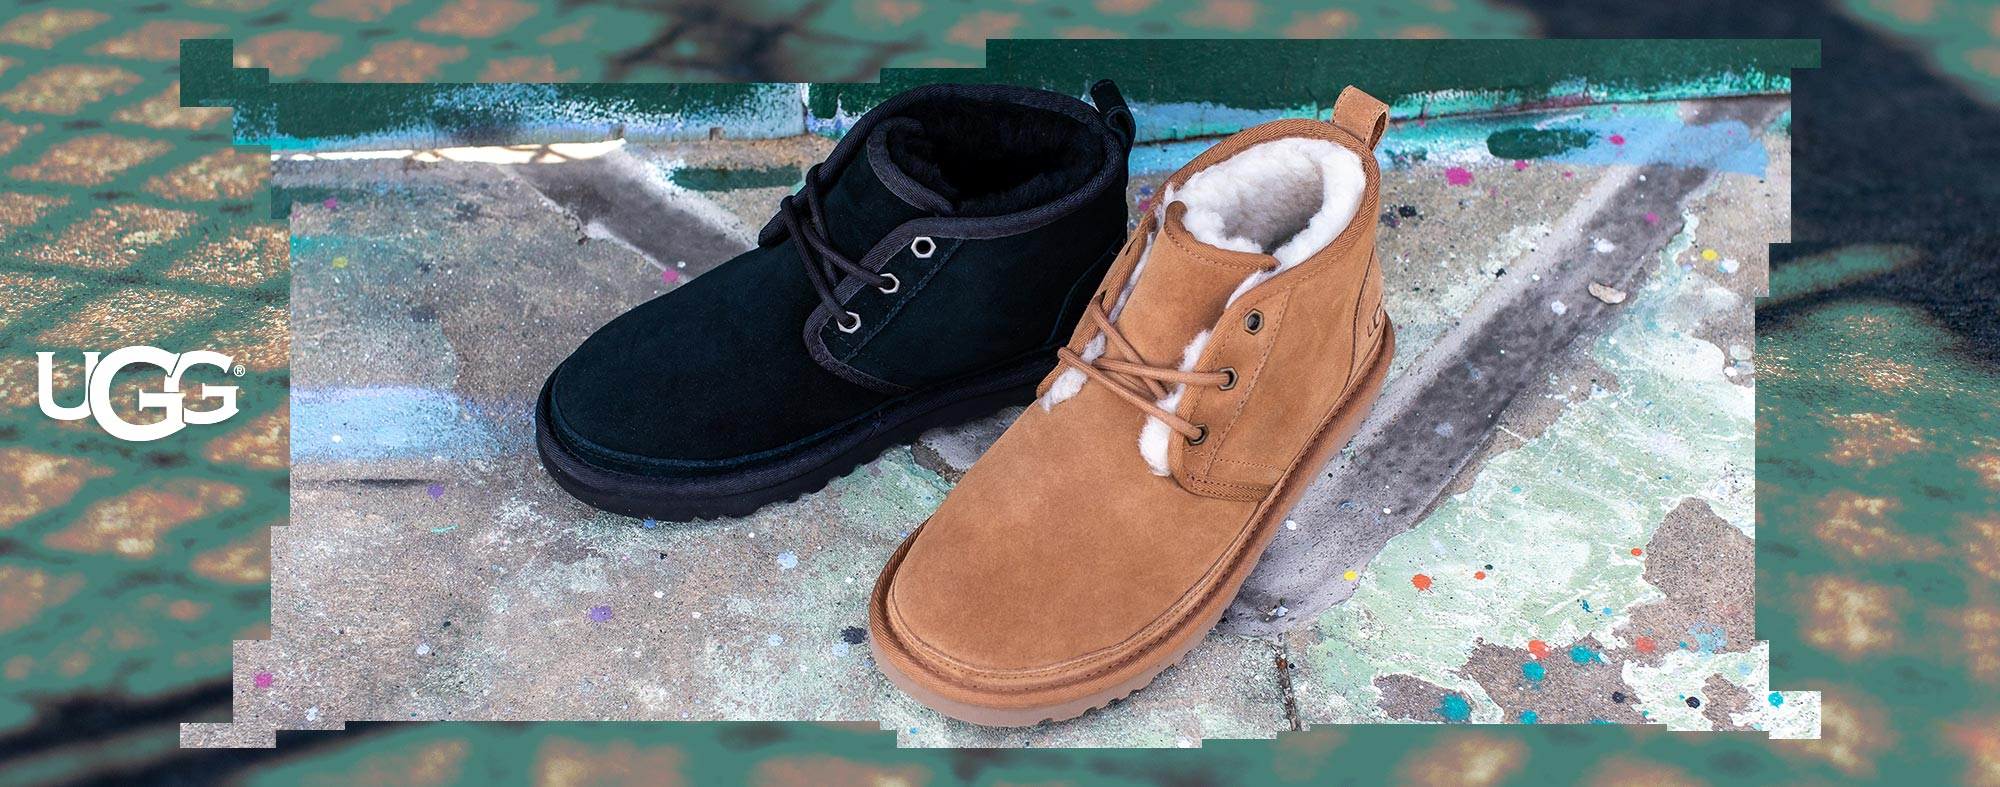 Shop shoes and boots from UGG at Journeys